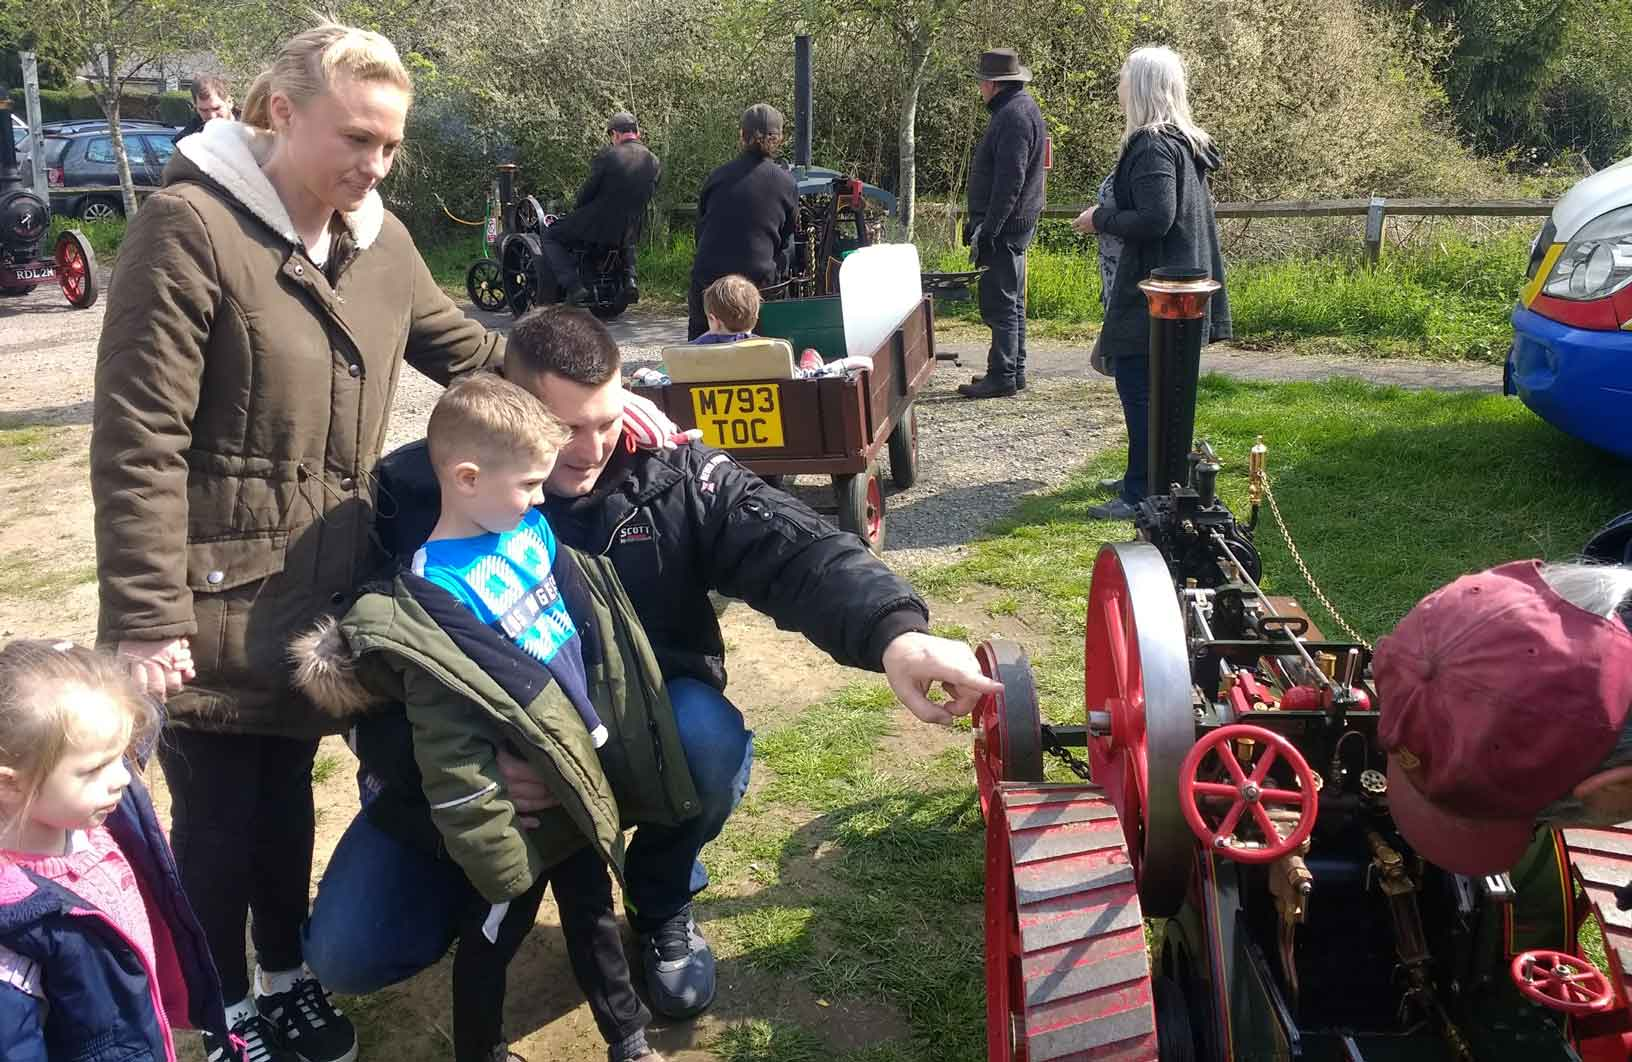 Family with traction engine